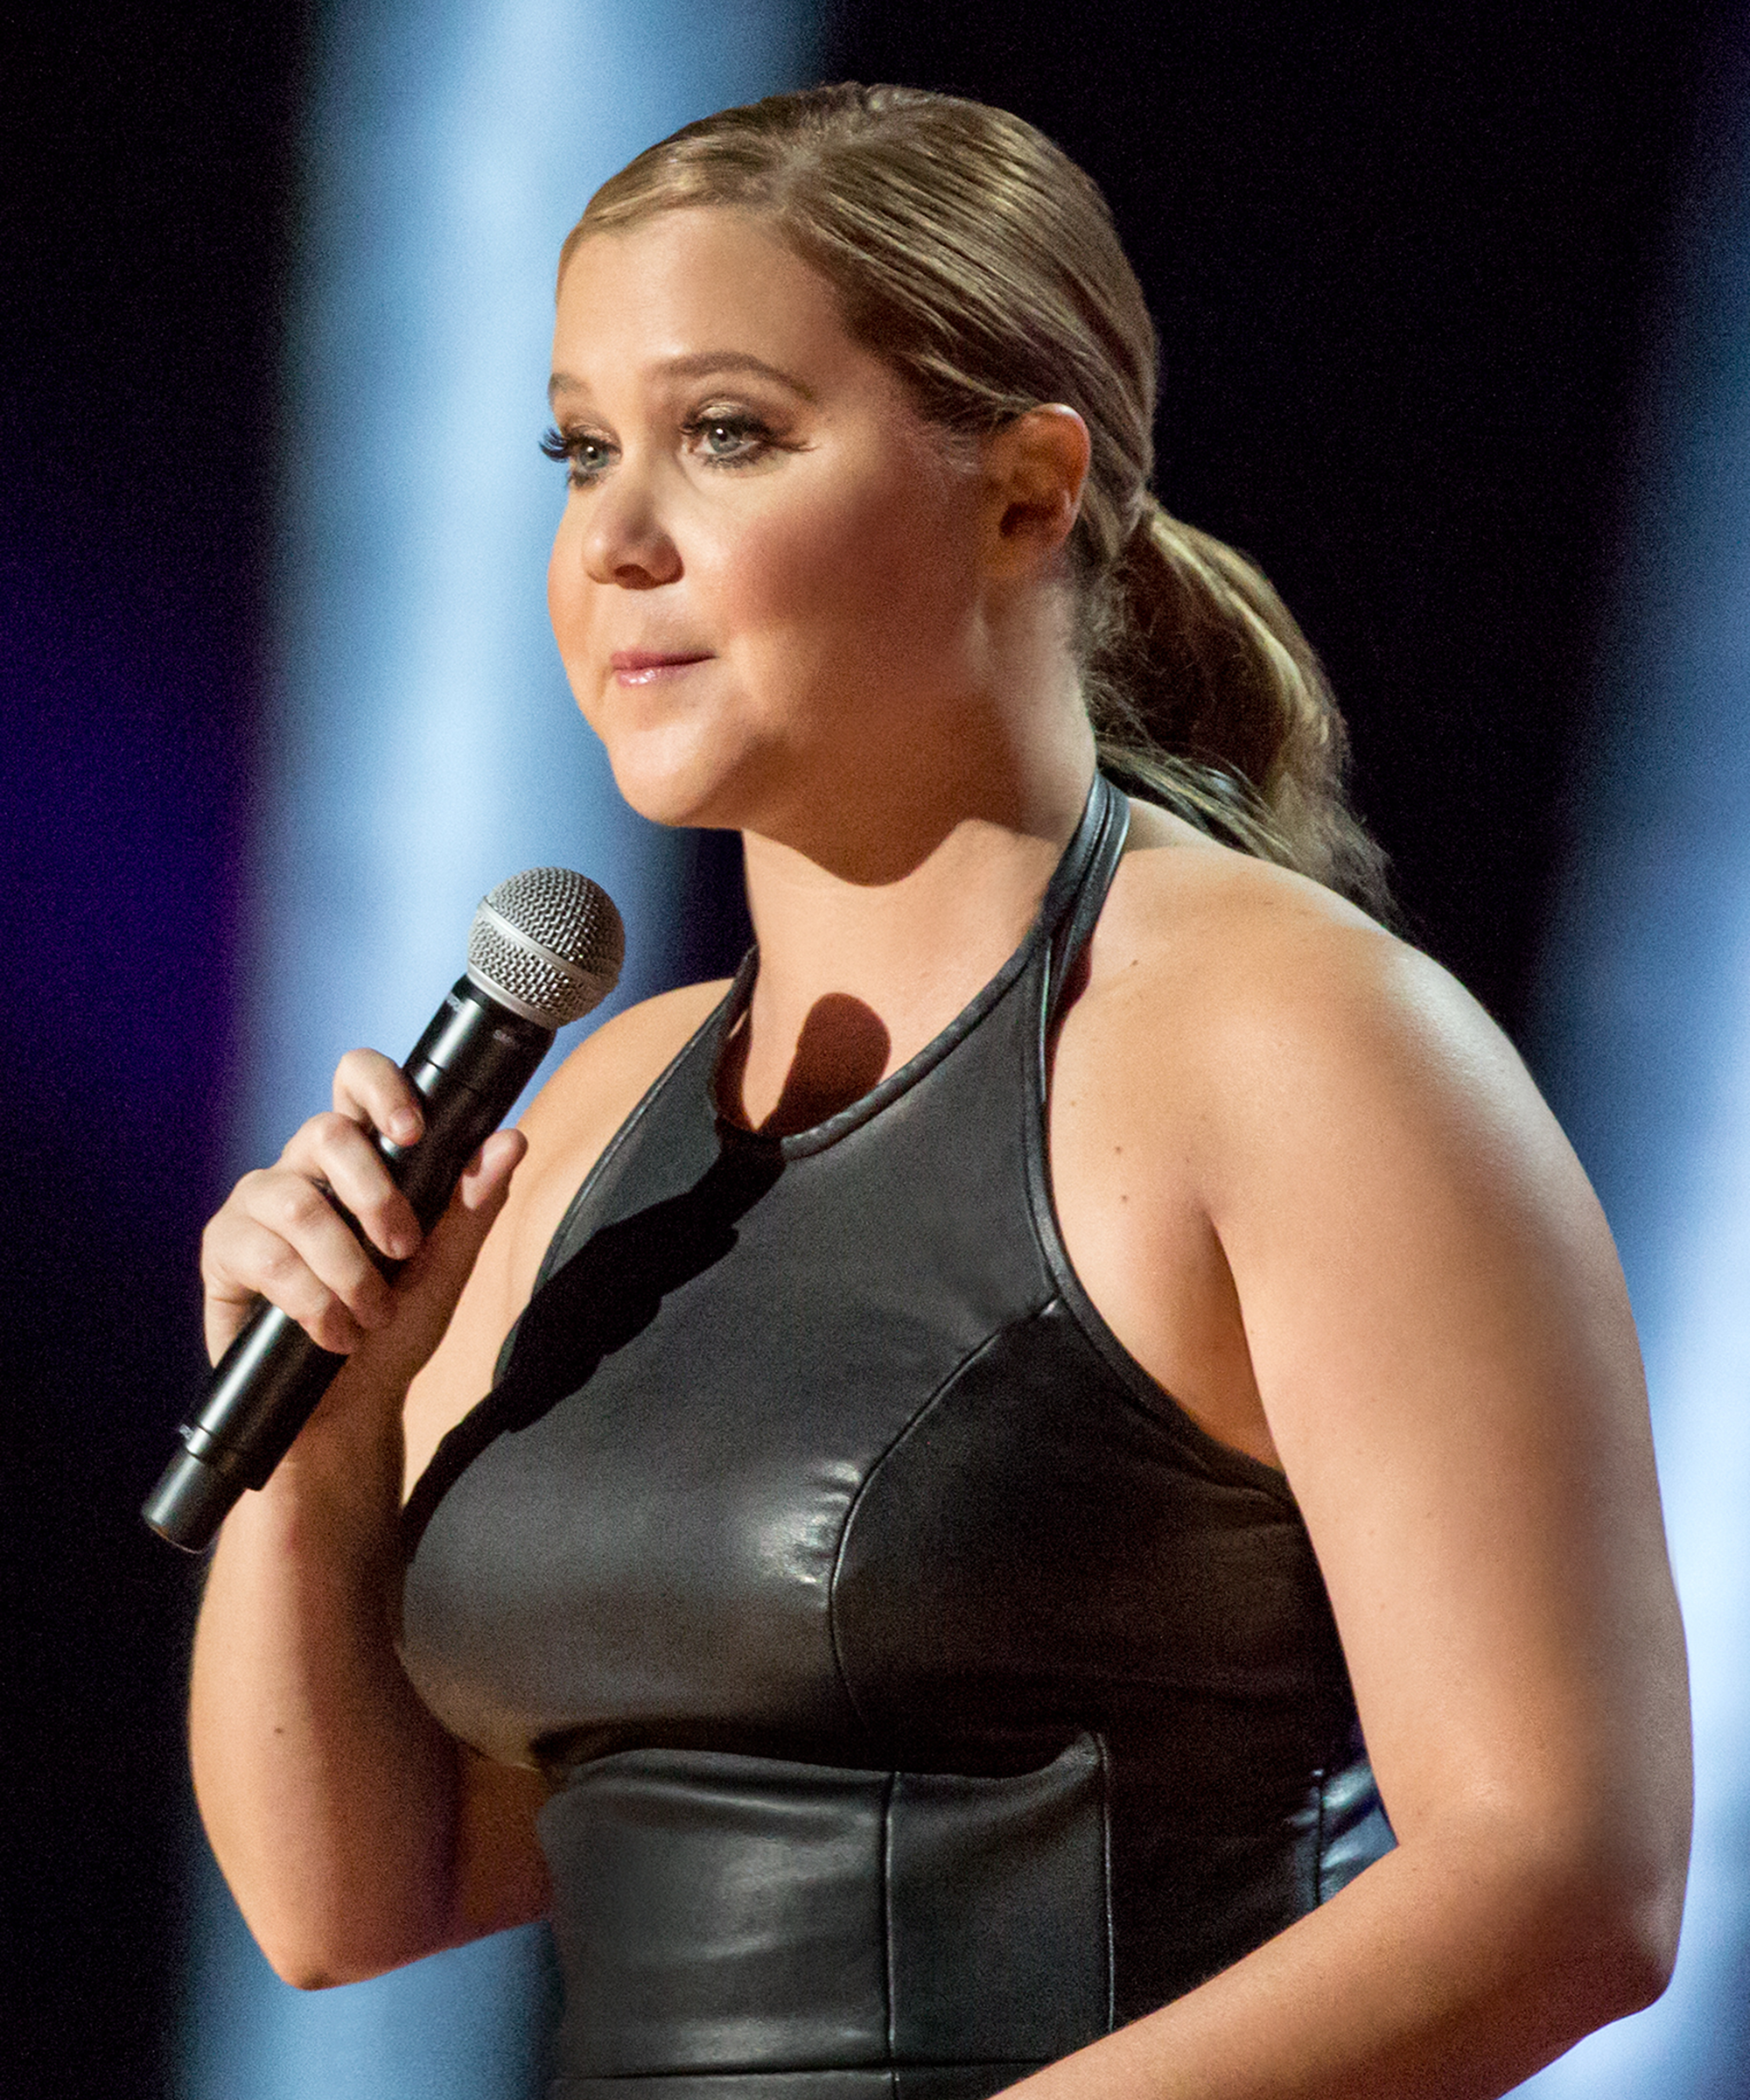 Amy Schumer Tit Pics netflix amy schumer standup special leather meaning